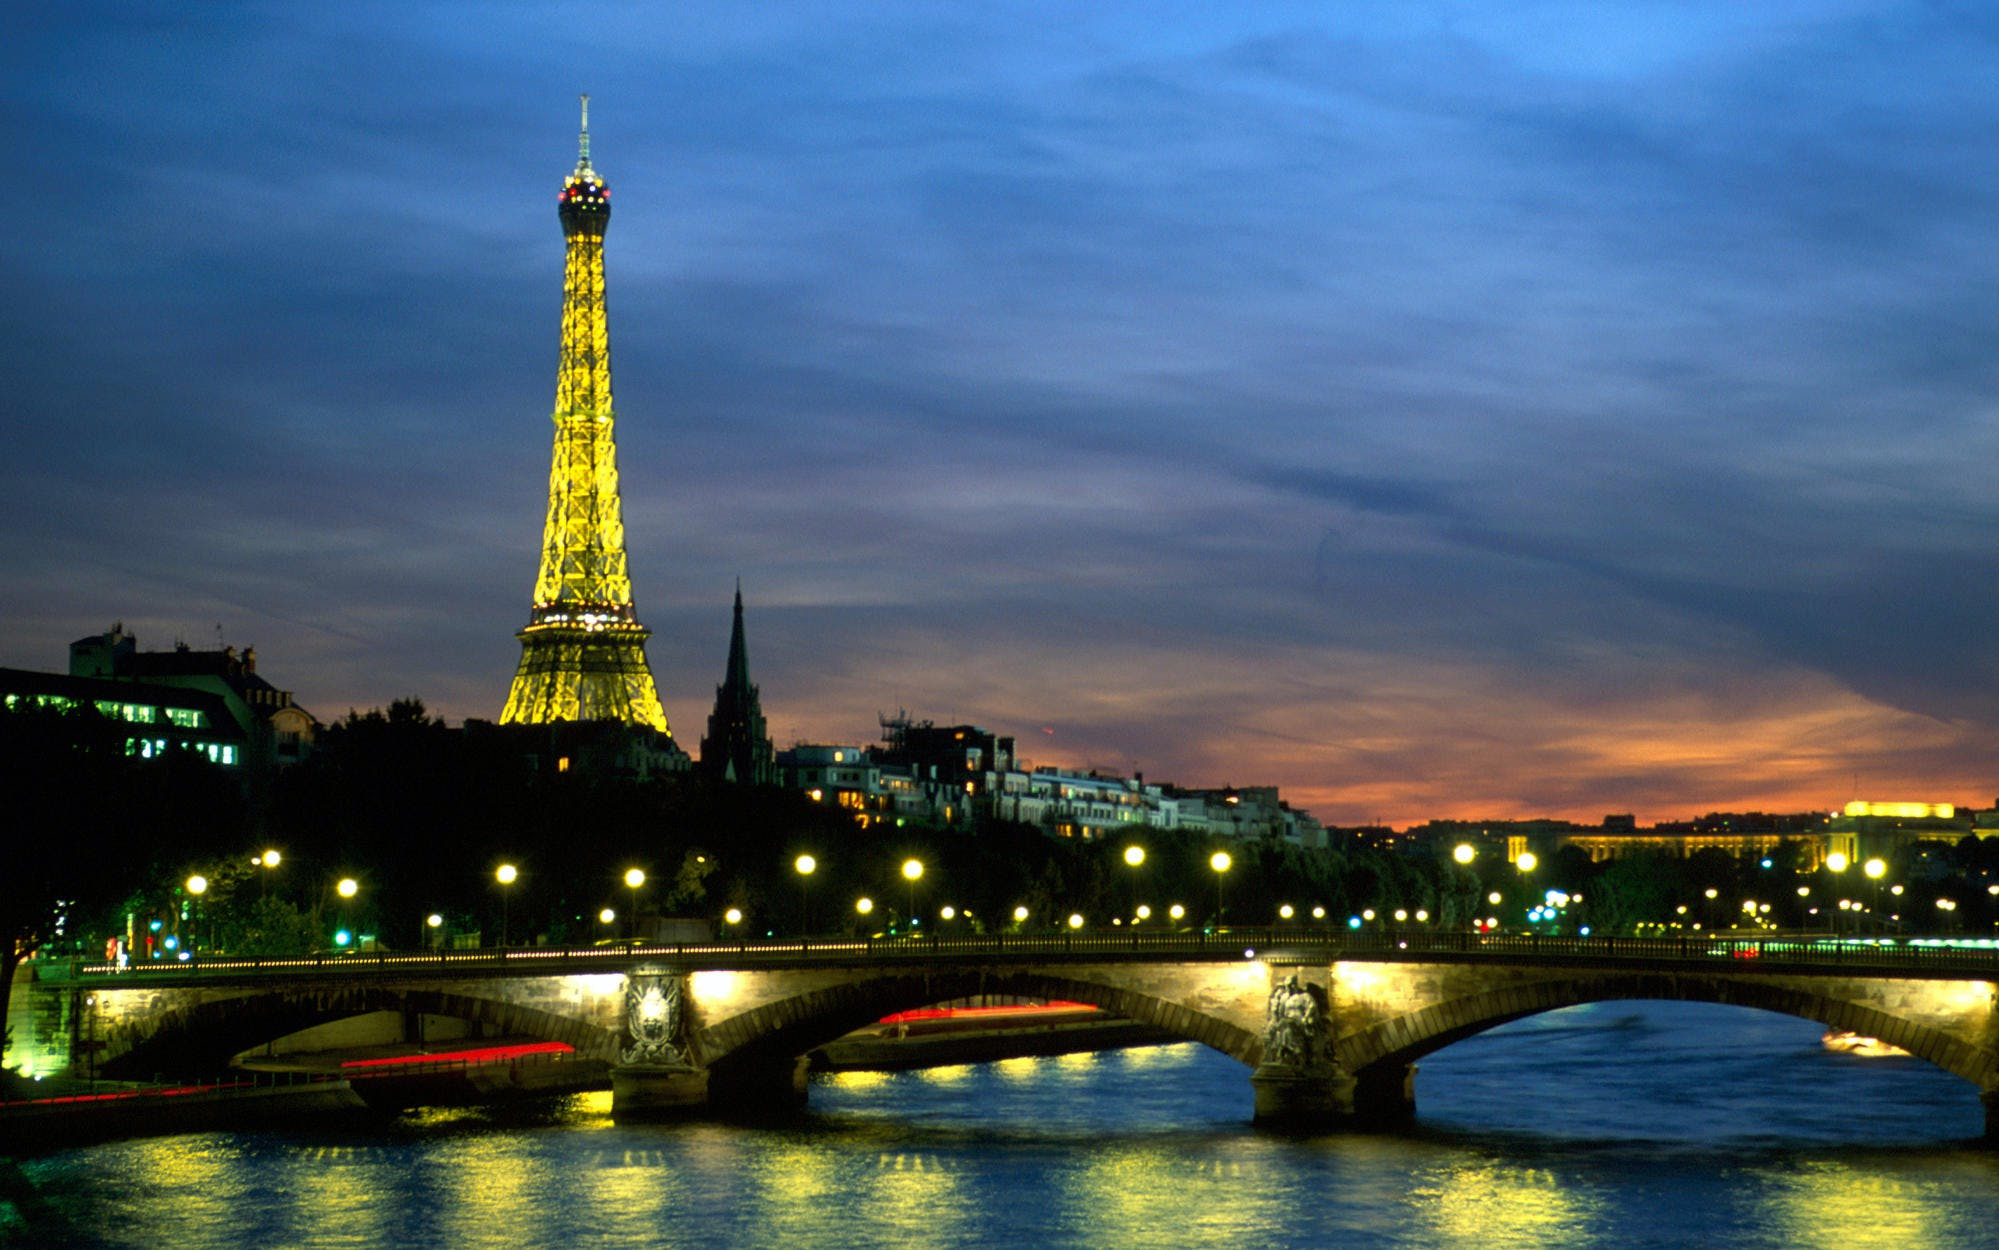 dinner at the eiffel tower + seine river cruise -2